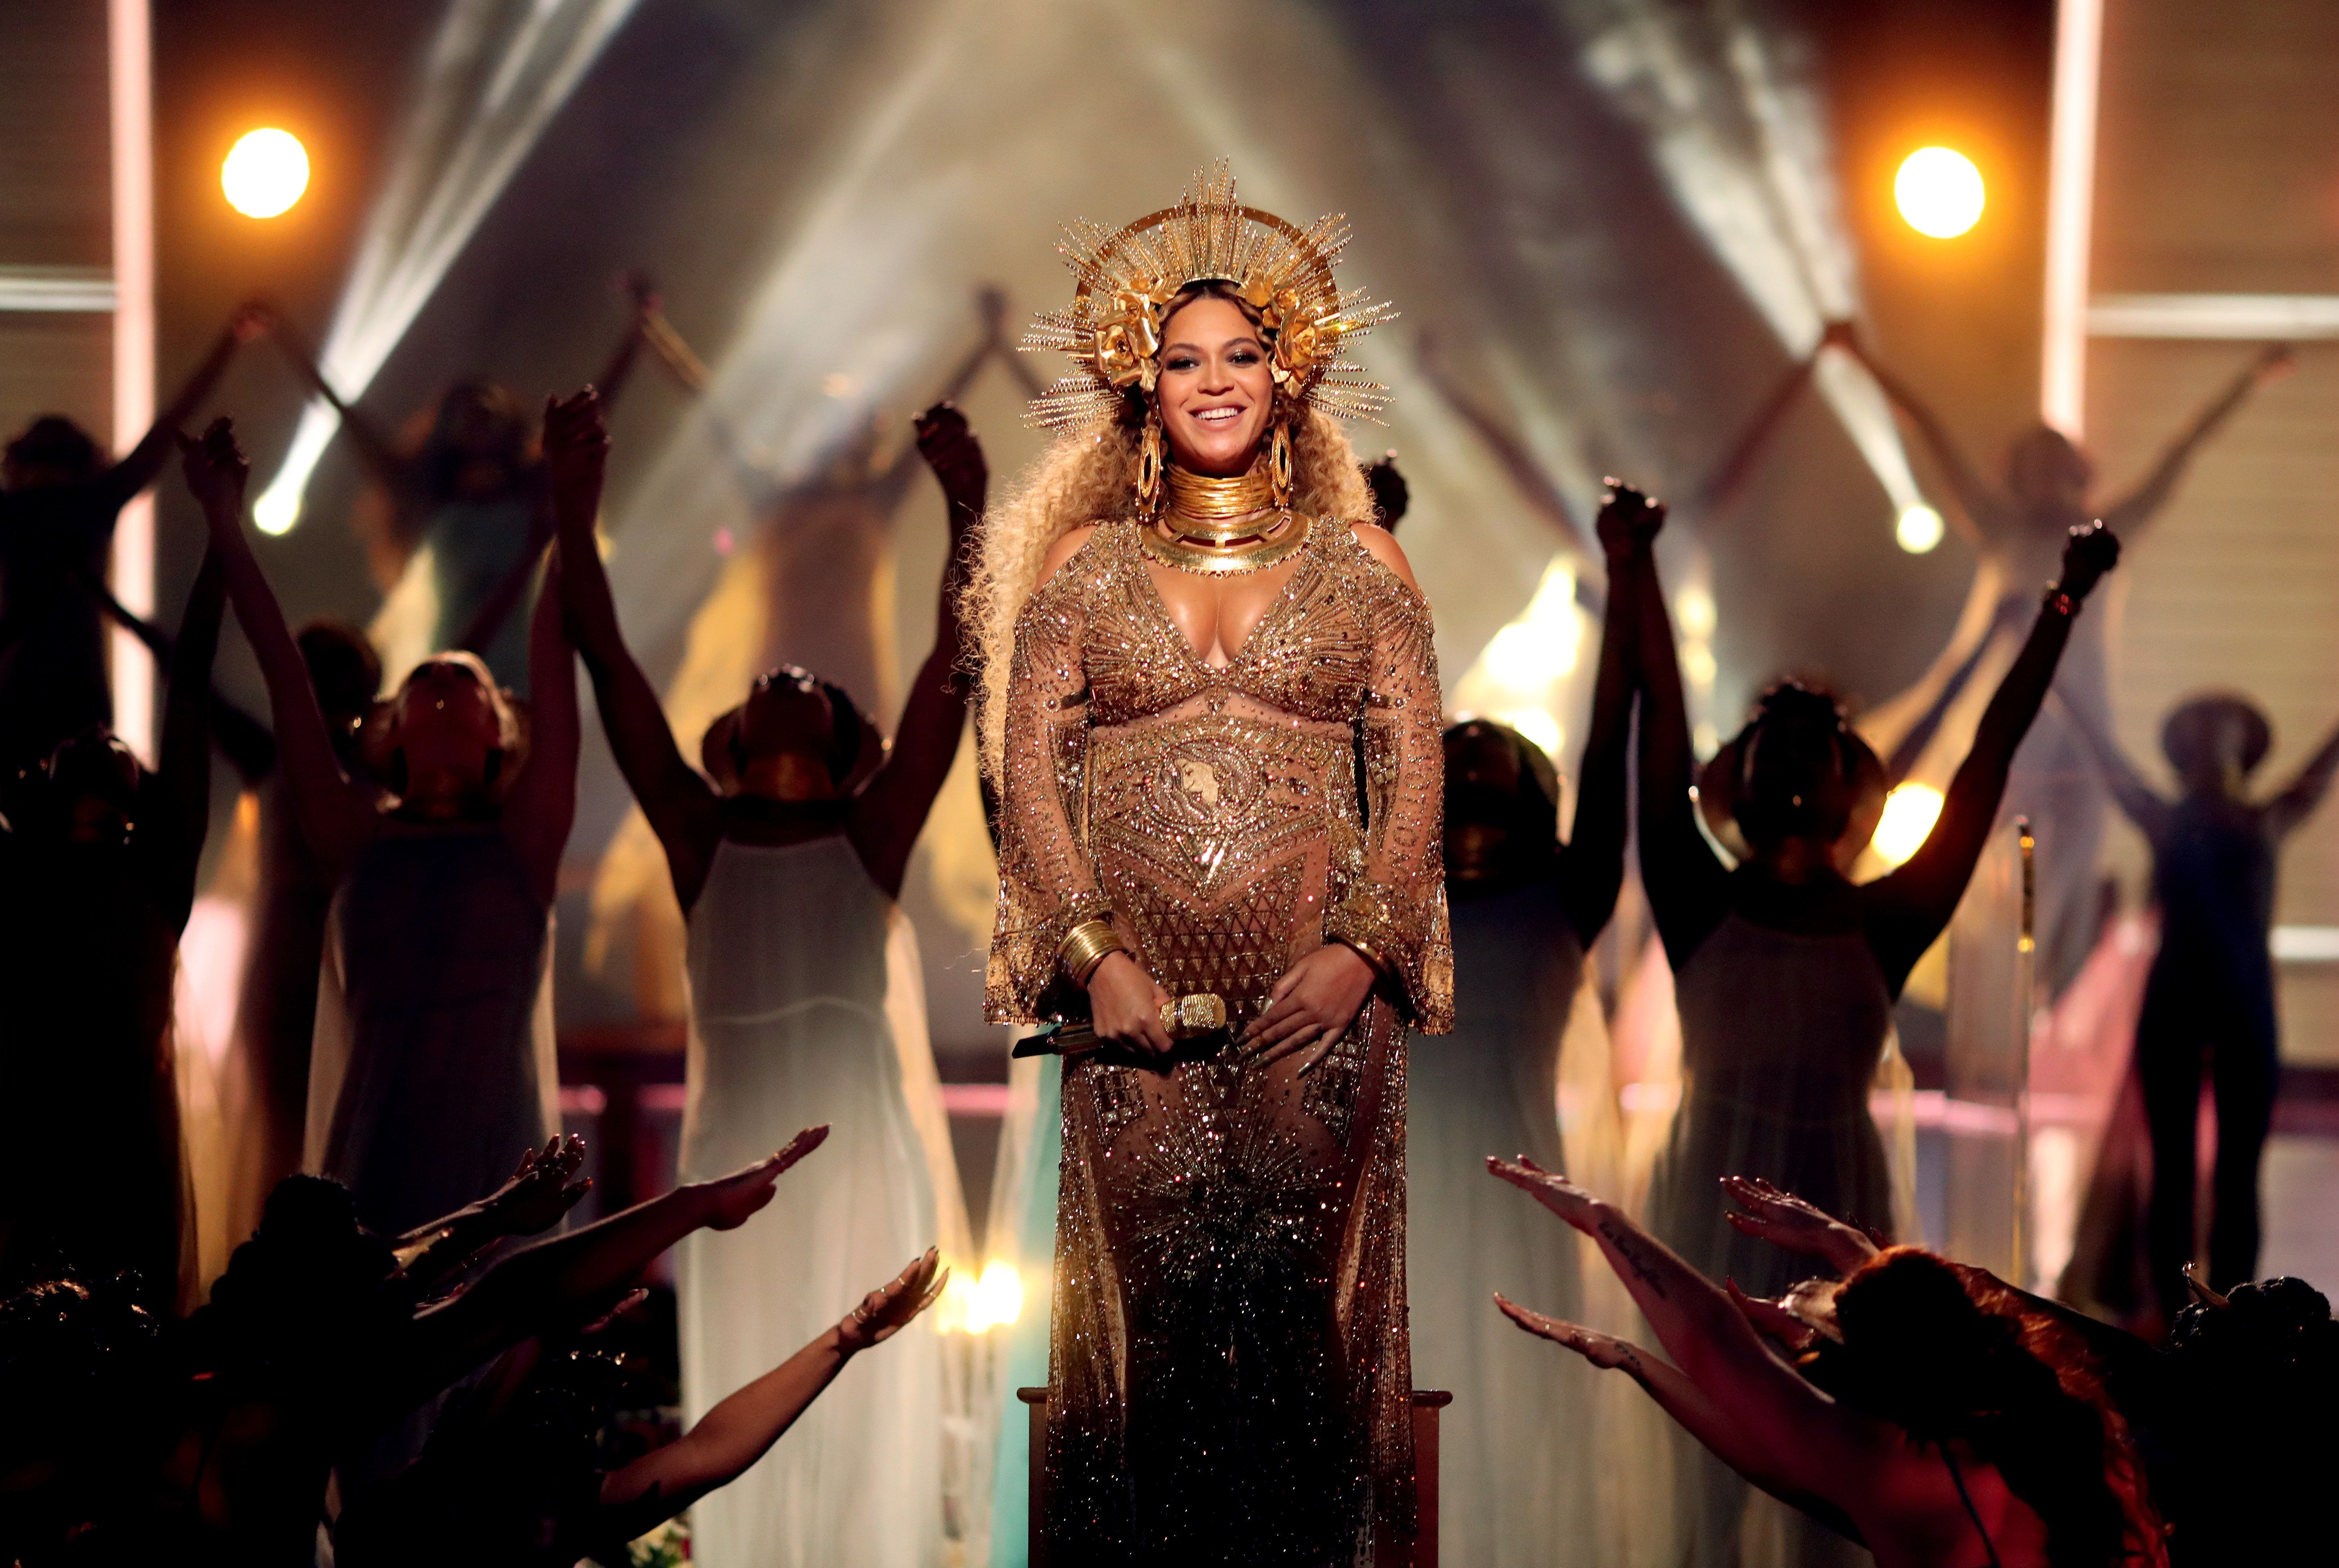 Beyoncé's publicist released a powerful statement about the effects of pregnancy after a gossip site questioned